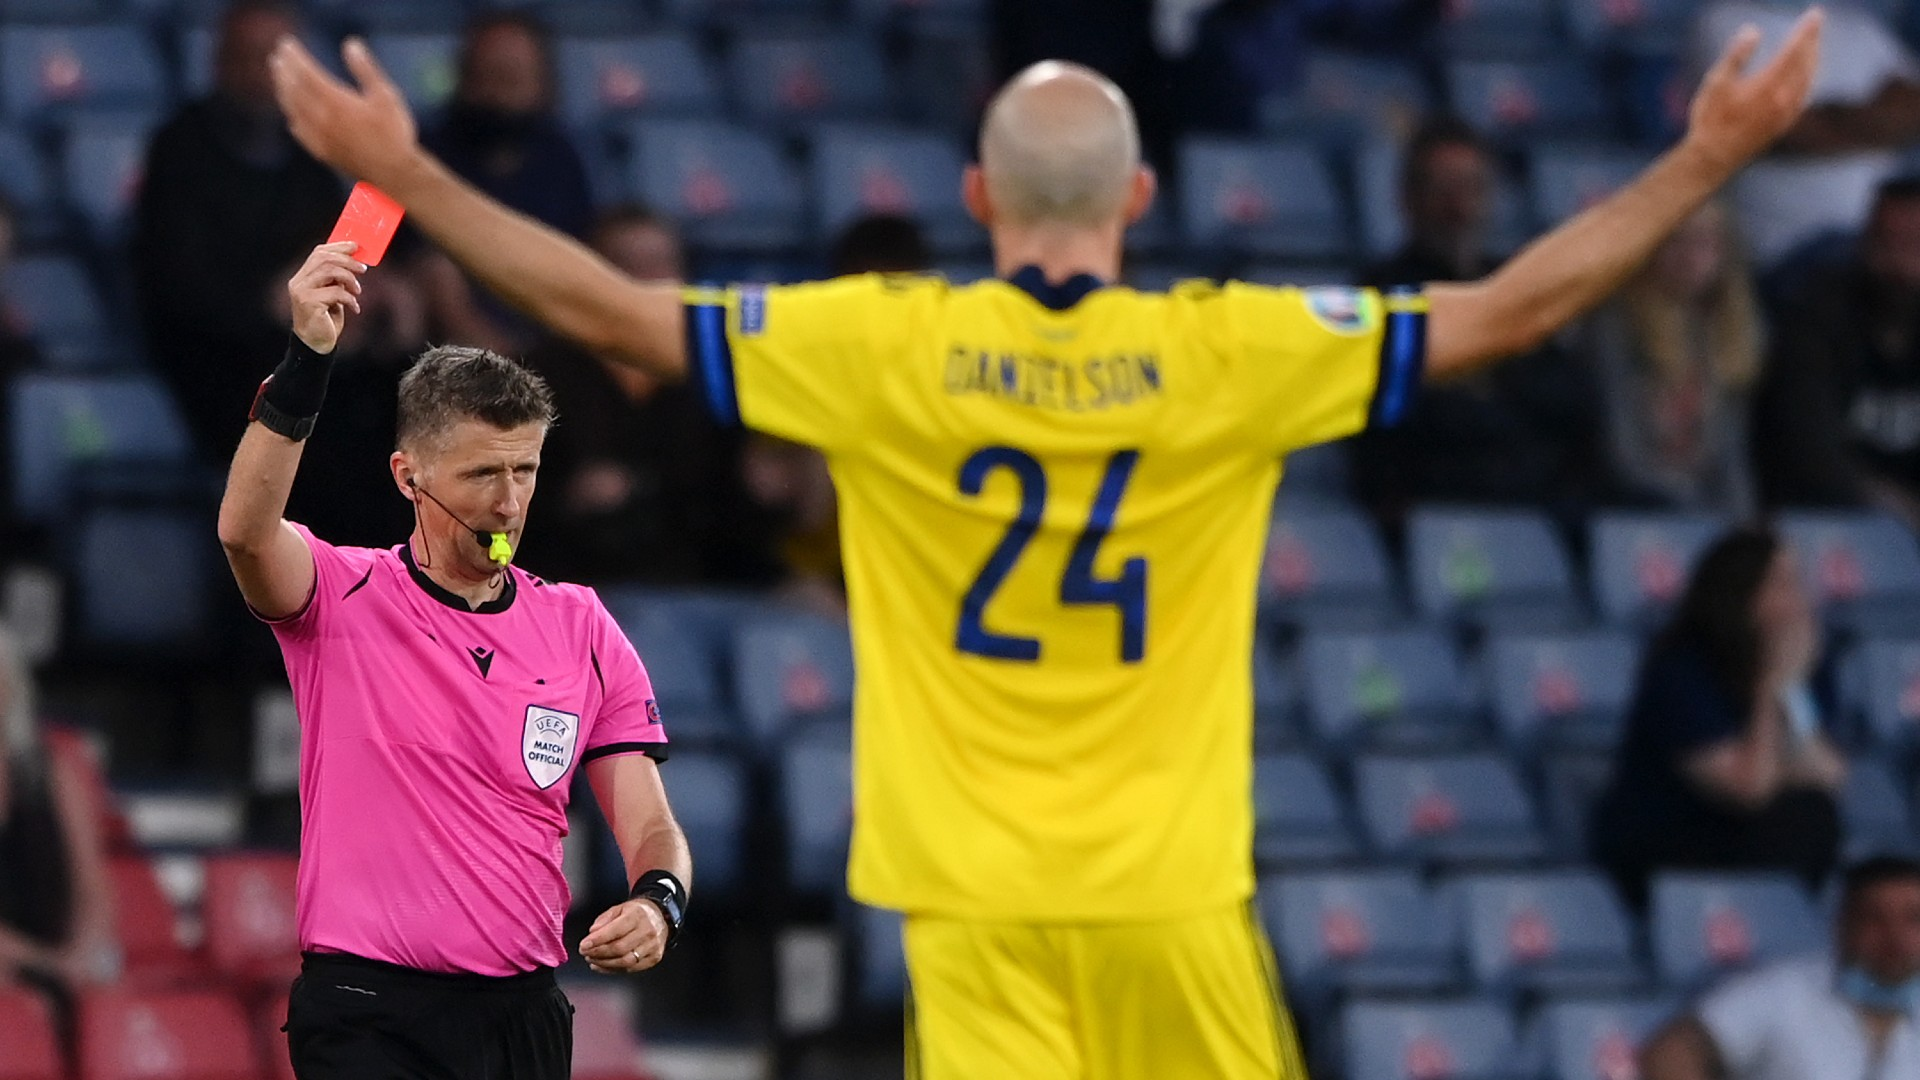 Danielson red card 'probably right' admits Sweden boss Andersson after Euro 2020 defeat